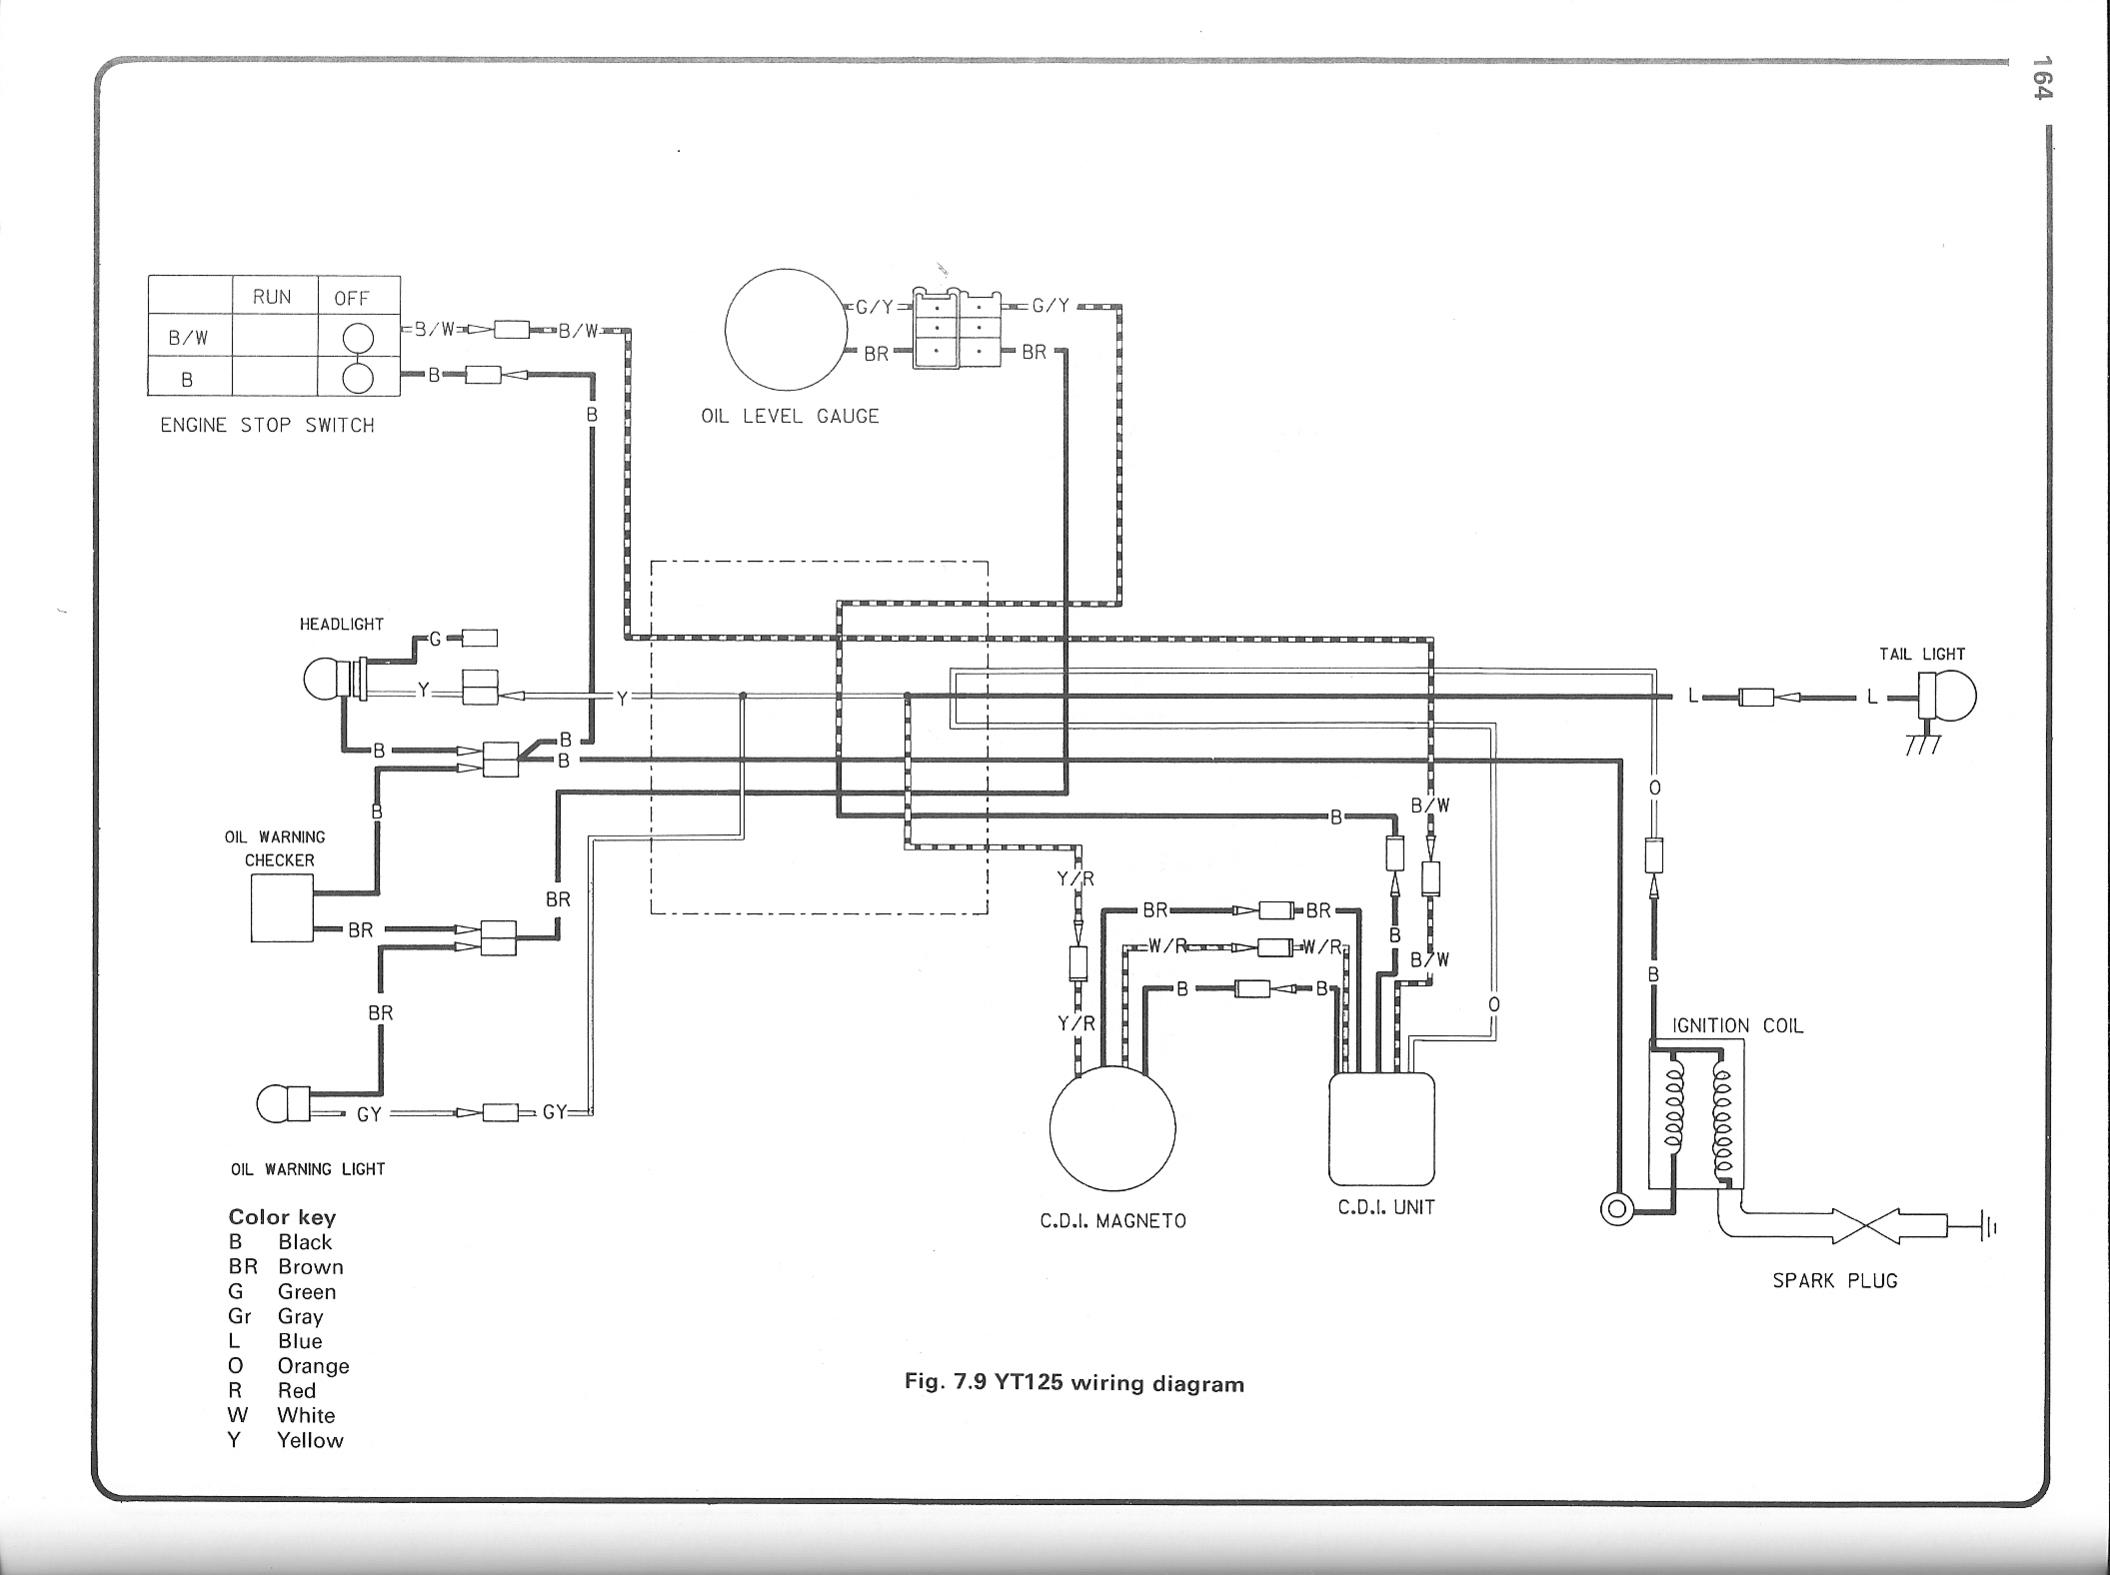 yamaha blaster stator wiring diagram the wiring diagram wiring diagram for 1998 yamaha 200 blaster wiring wiring wiring diagram